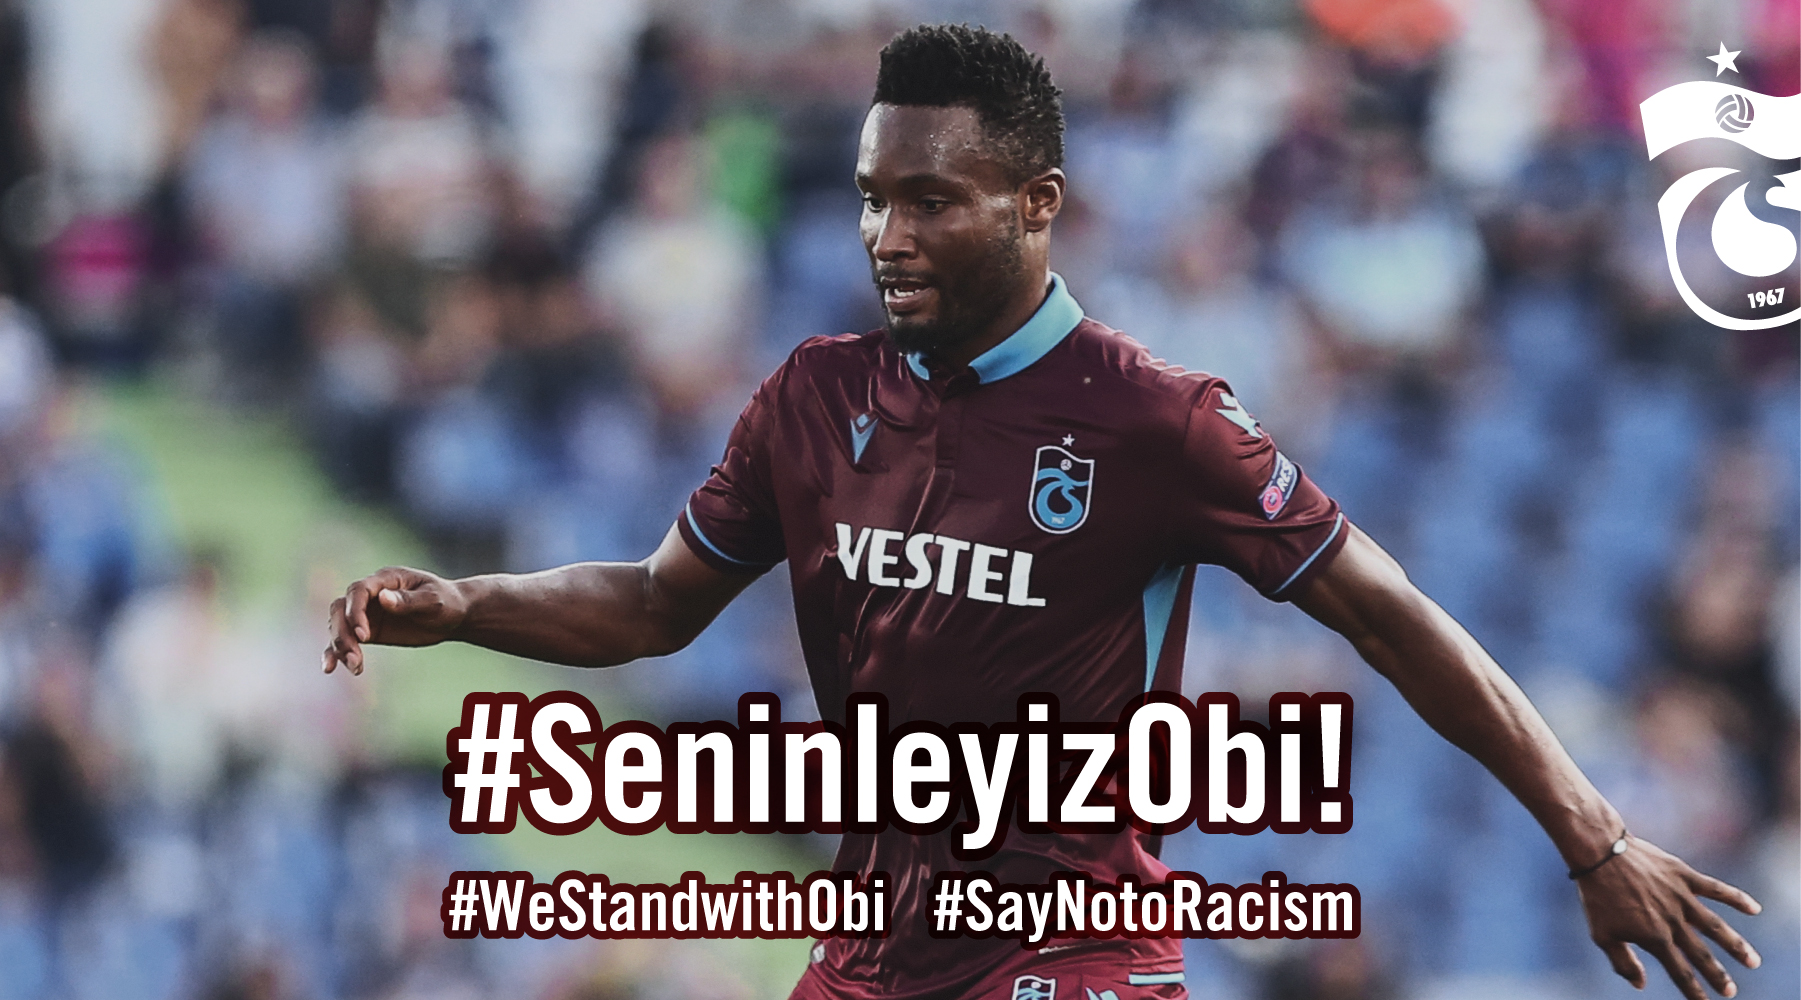 'We Are All One And Equal': Mikel Responds To Racist Abuse By Fenerbahce Fans